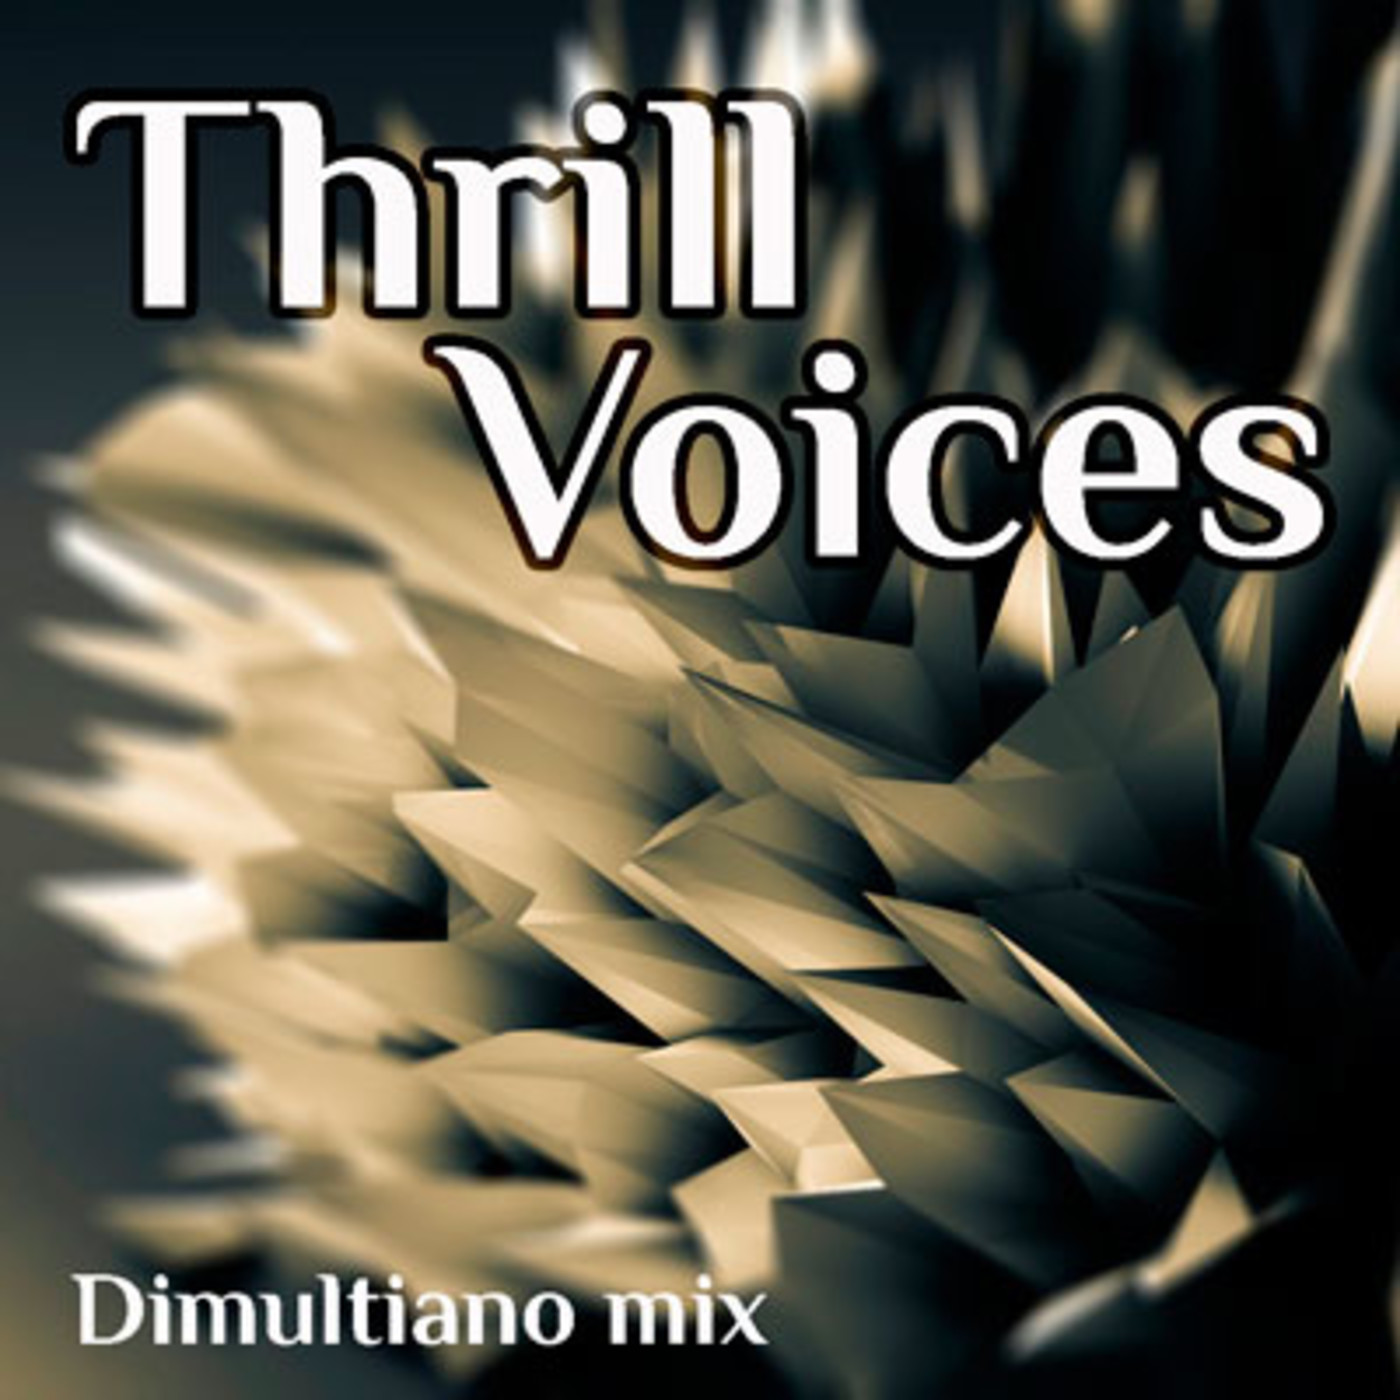 Dimultiano mix - Thrill Voices